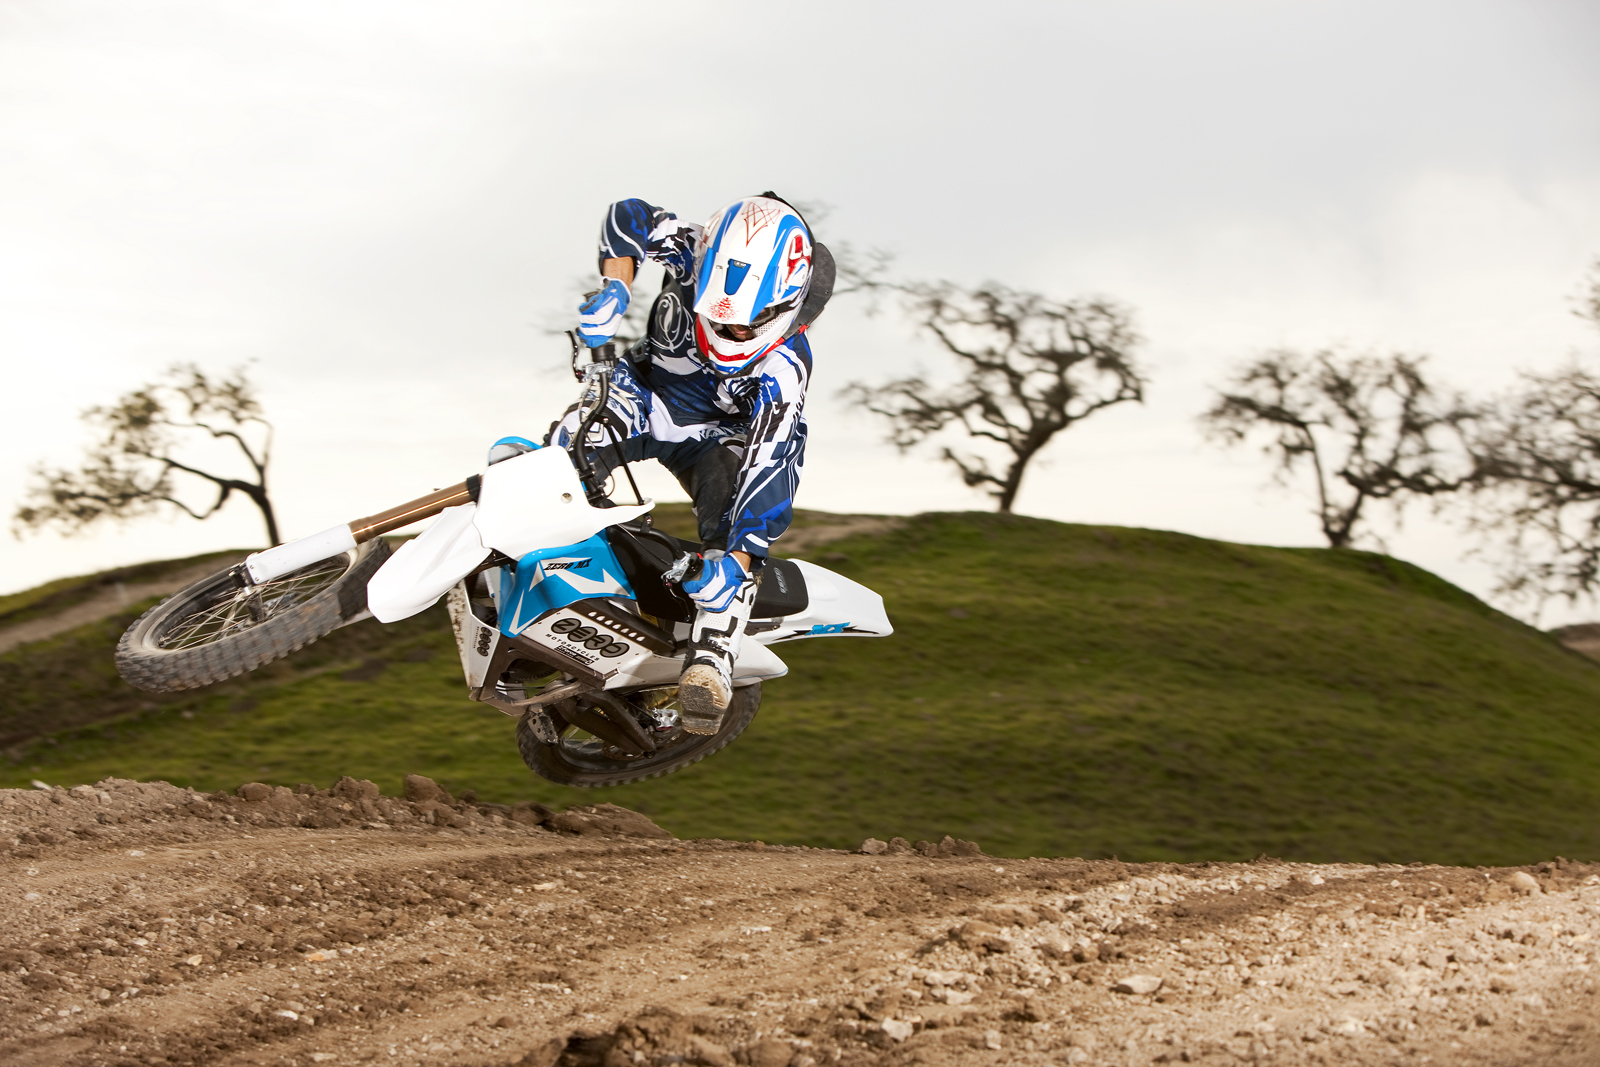 '.2010 Zero MX Electric Motorcycle: Zaca Station - Blue Scrub Lean Right.'